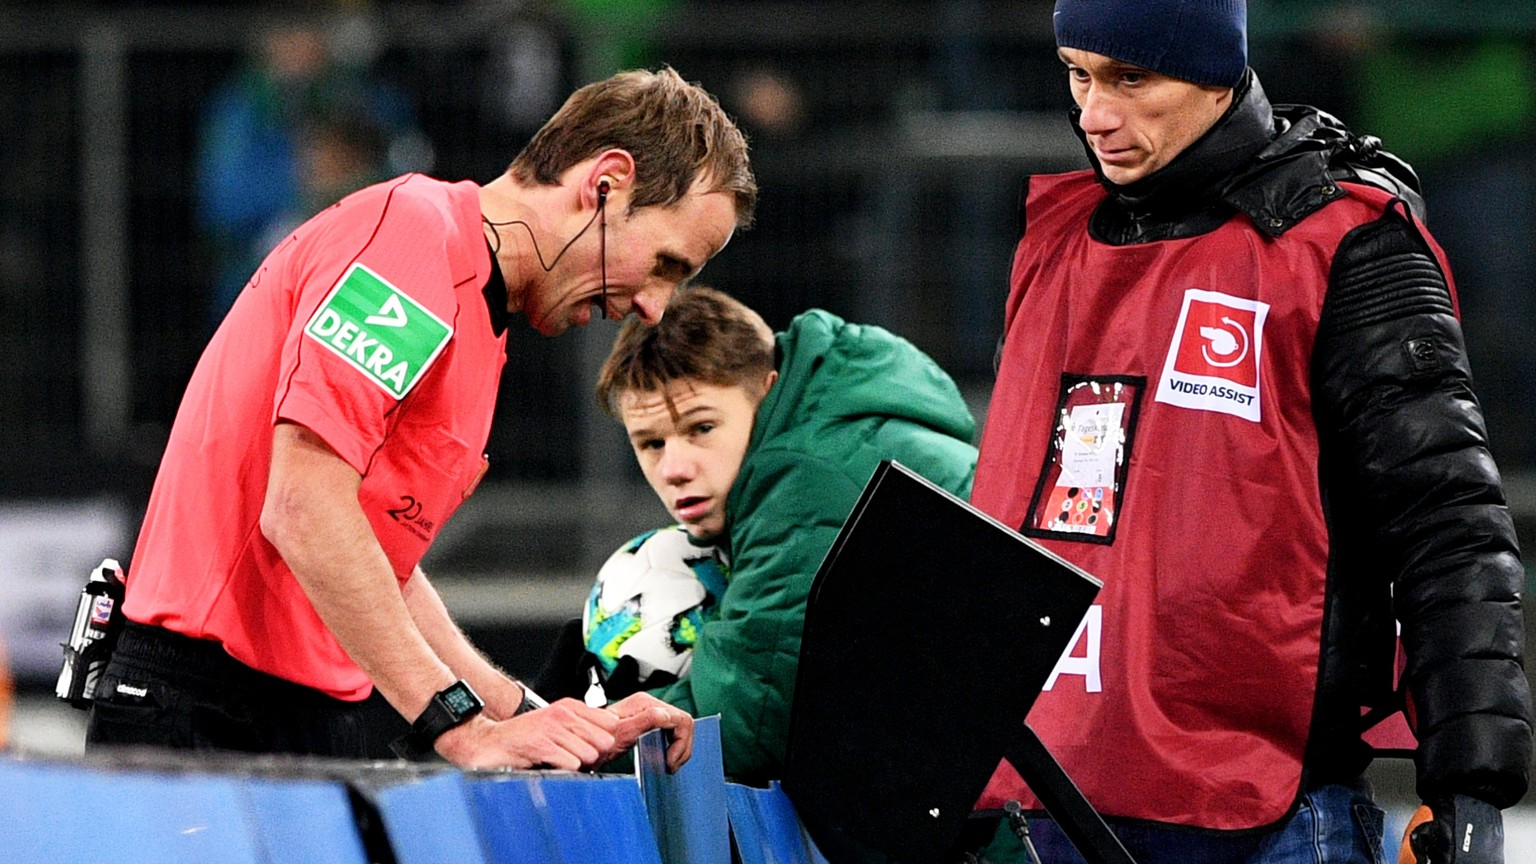 epa06379699 Referee Sascha Stegemann (L) looks at a replay of the video assistant referee (VAR) system during the German Bundesliga soccer match between Borussia Moenchengladbach and FC Schalke 04 at Borussia-Park in Moenchengladbach, Germany, 09 December 2017.  EPA/SASCHA STEINBACH EMBARGO CONDITIONS - ATTENTION: Due to the accreditation guidelines, the DFL only permits the publication and utilisation of up to 15 pictures per match on the internet and in online media during the match.